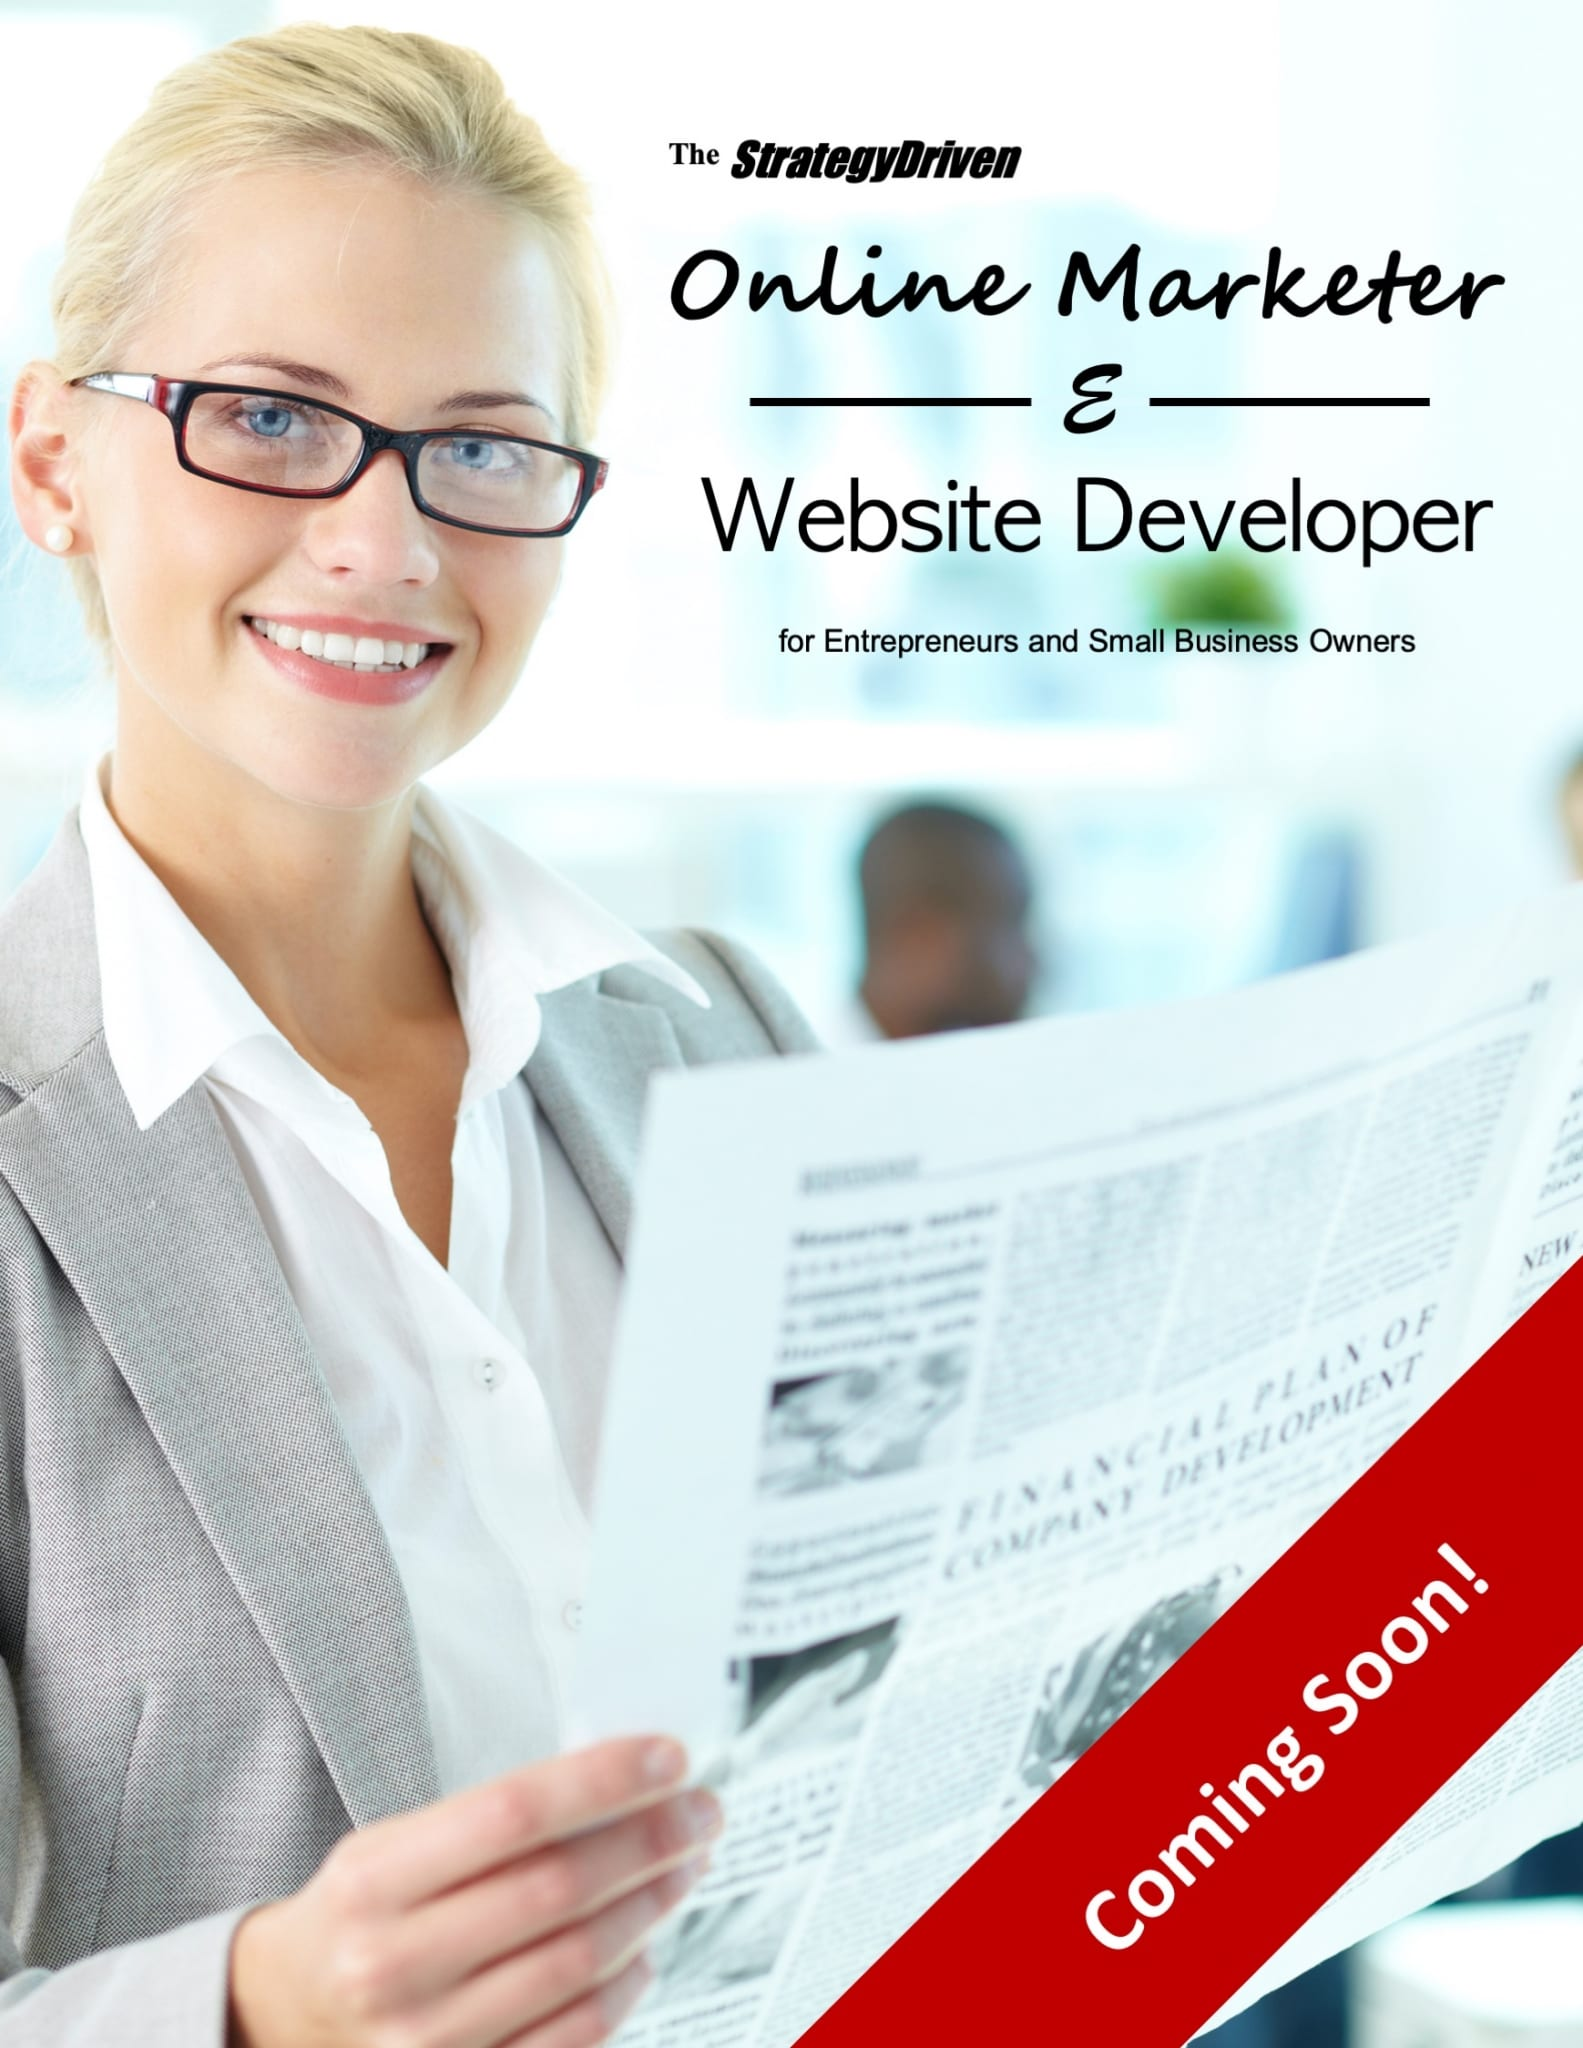 StrategyDriven Online Marketer & Website Developer Magazine - Coming Soon